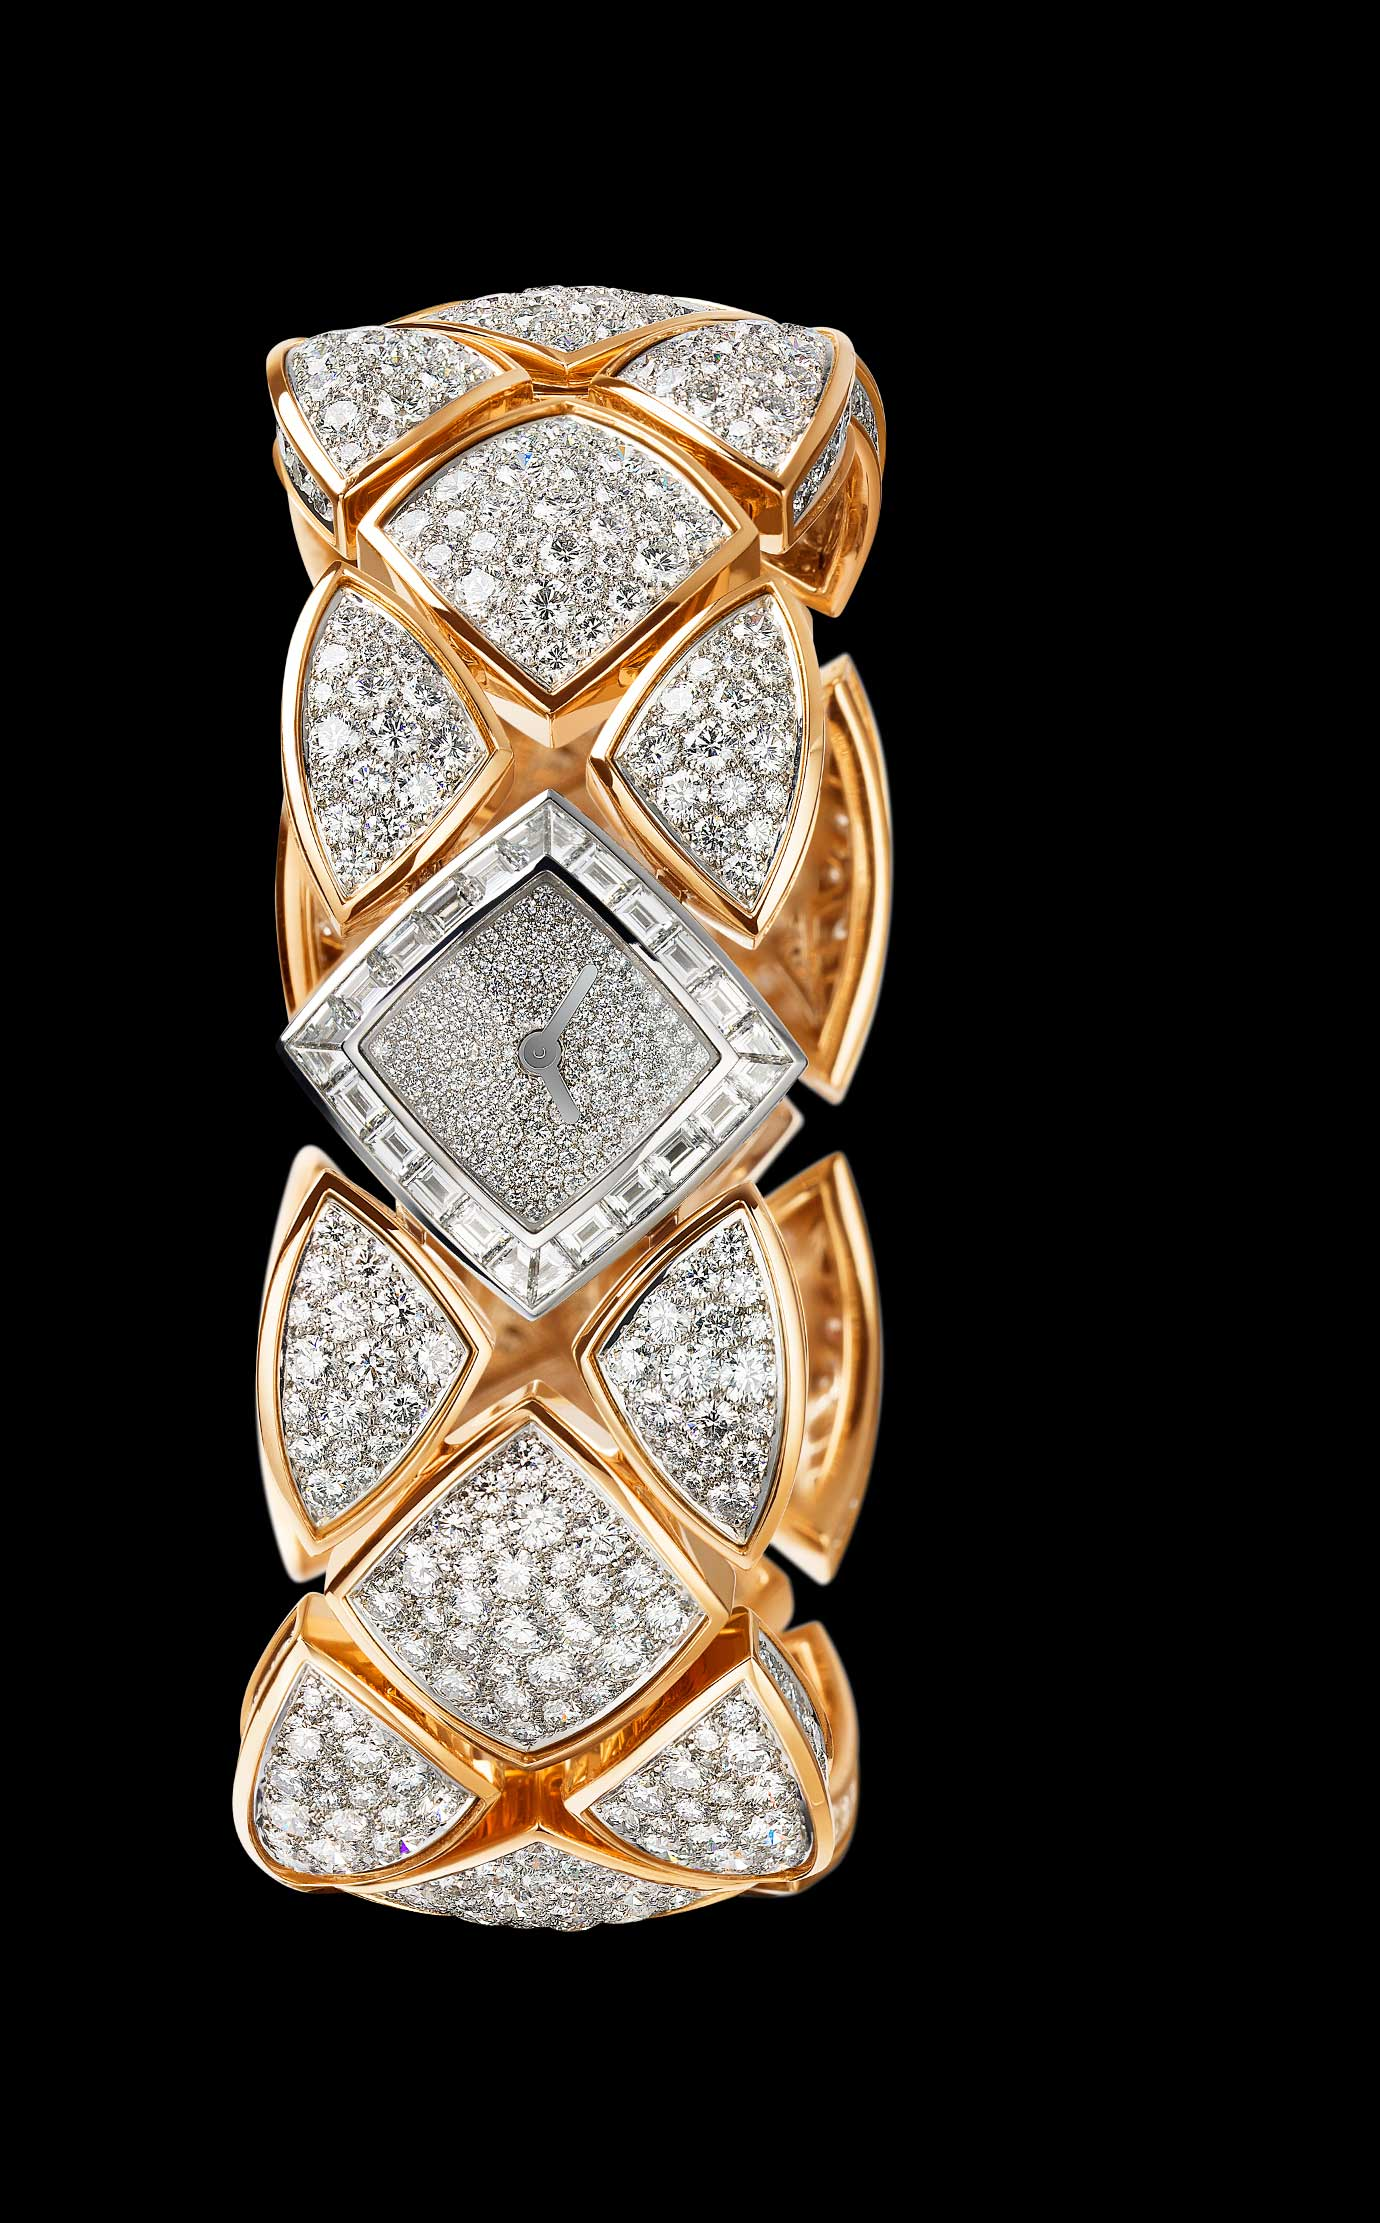 Les Eternelles de CHANEL. Secret cuff watch in white and pink gold. 17.22-carat orange-pink Padparadscha sapphire. - Back